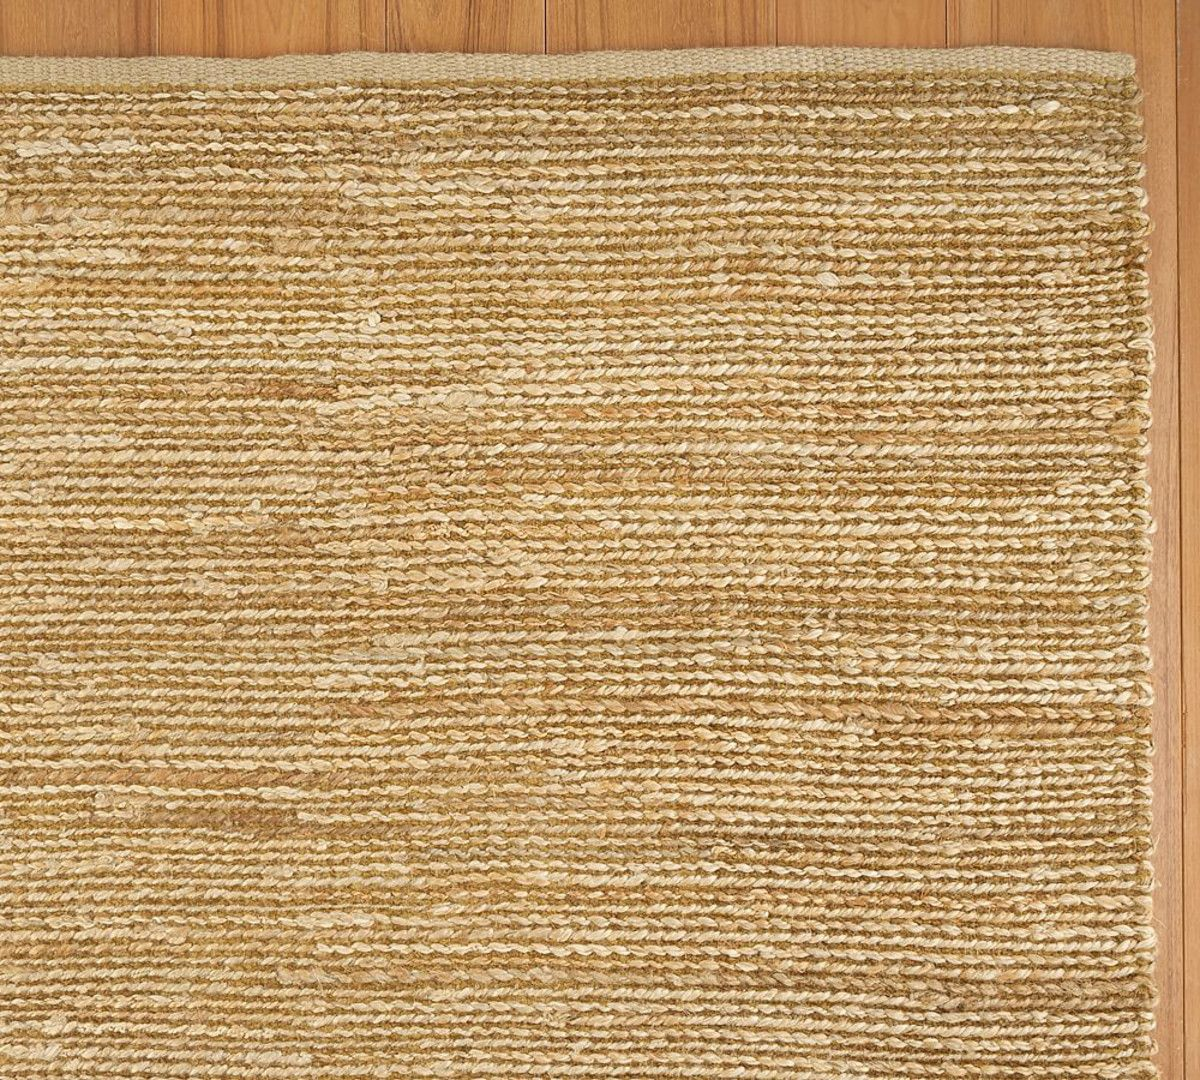 Heathered Chenille Jute Rug Natural 244 X 305cm 570 00